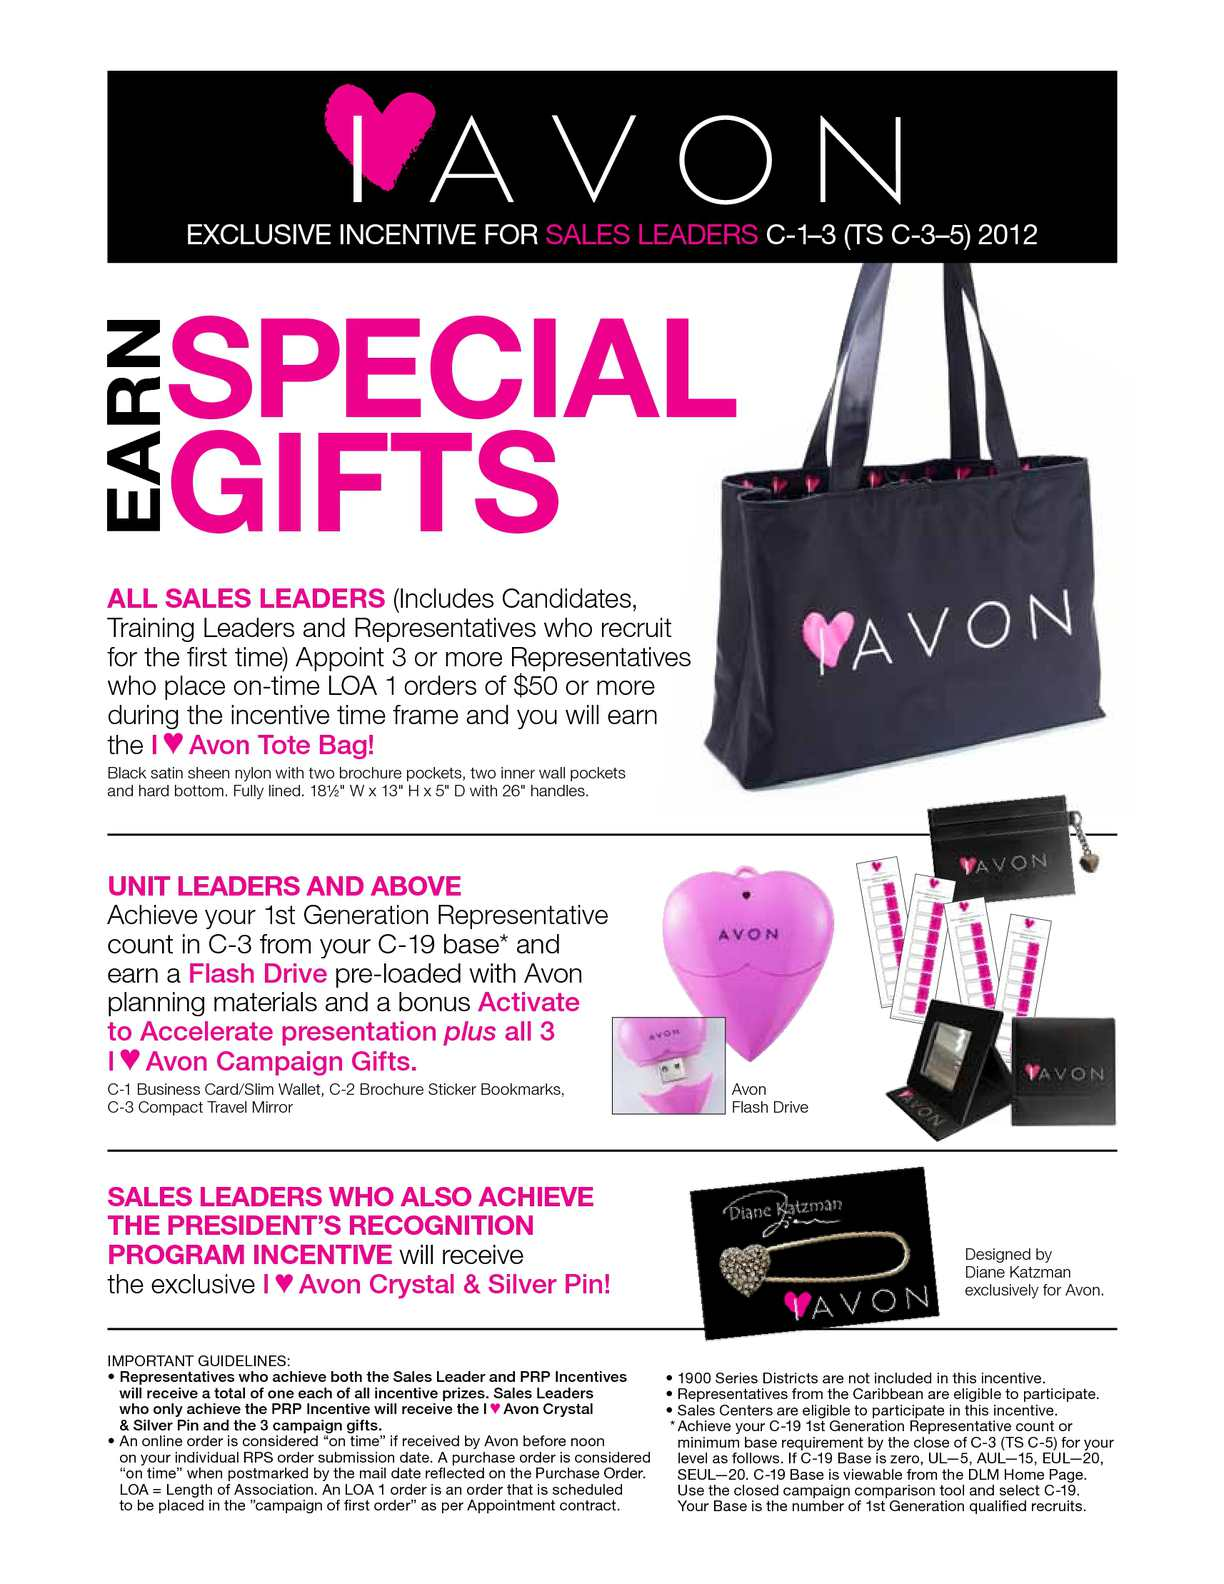 Calaméo - I <3 Avon Incentive Flyer for Sales Leaders that are ...